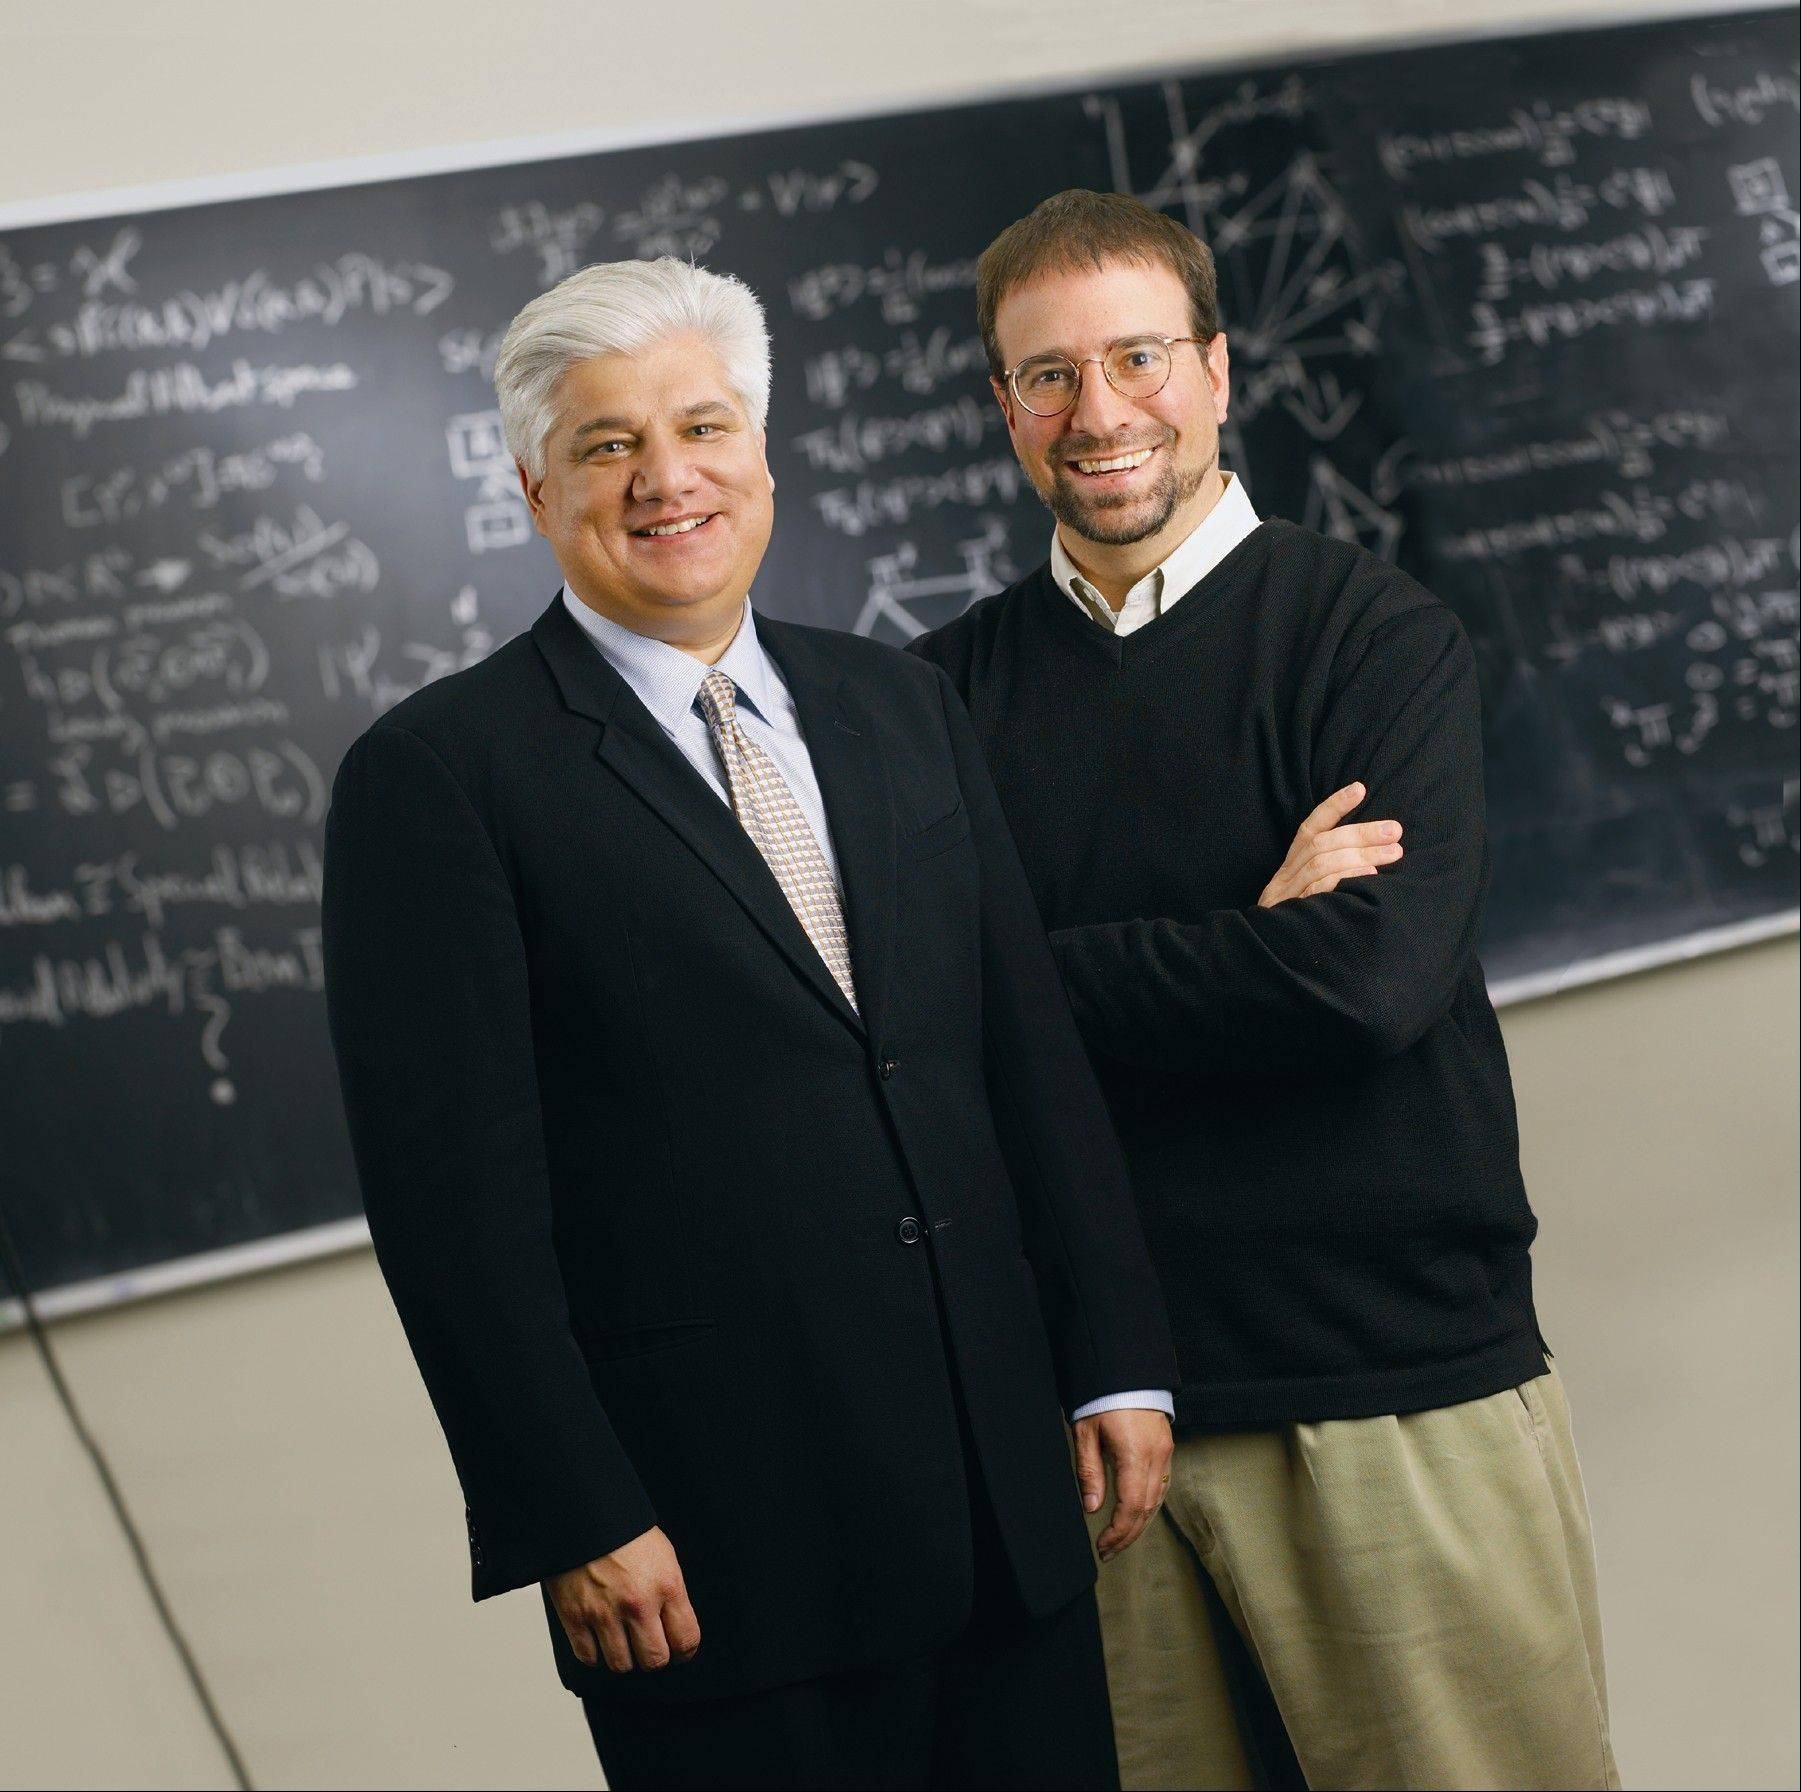 This undated photo provided by Perimeter Institute shows Mike Lazaridis, left, creator of BlackBerry, and Howard Burton, director of the Perimeter Institute in Waterloo, Ontario, Canada.